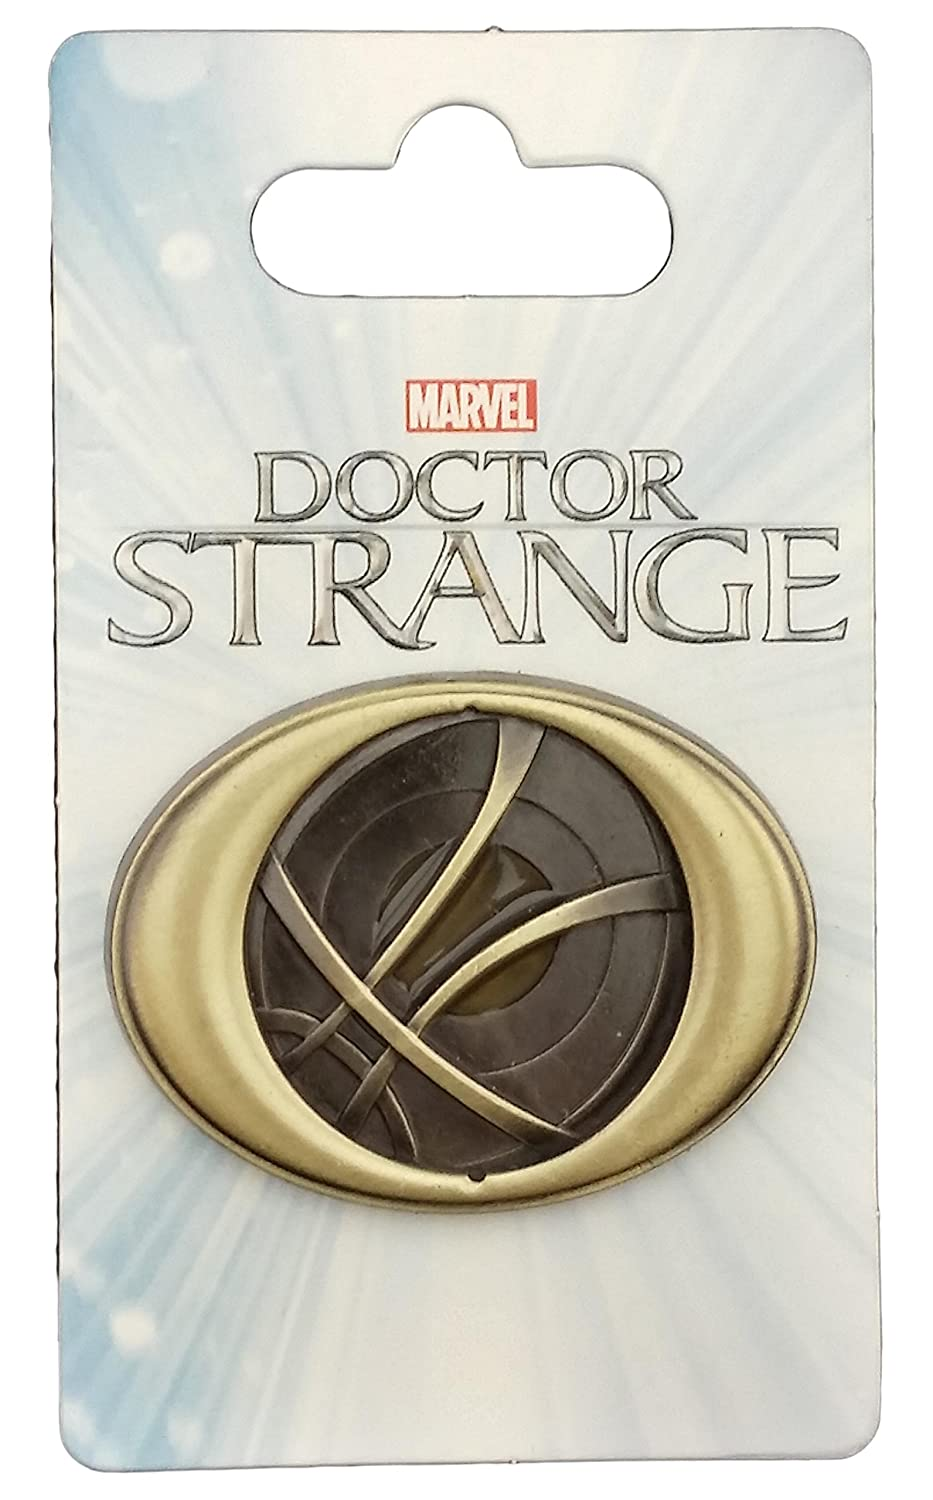 Disney Pin - Marvel Doctor Strange - Eye of Agamotto